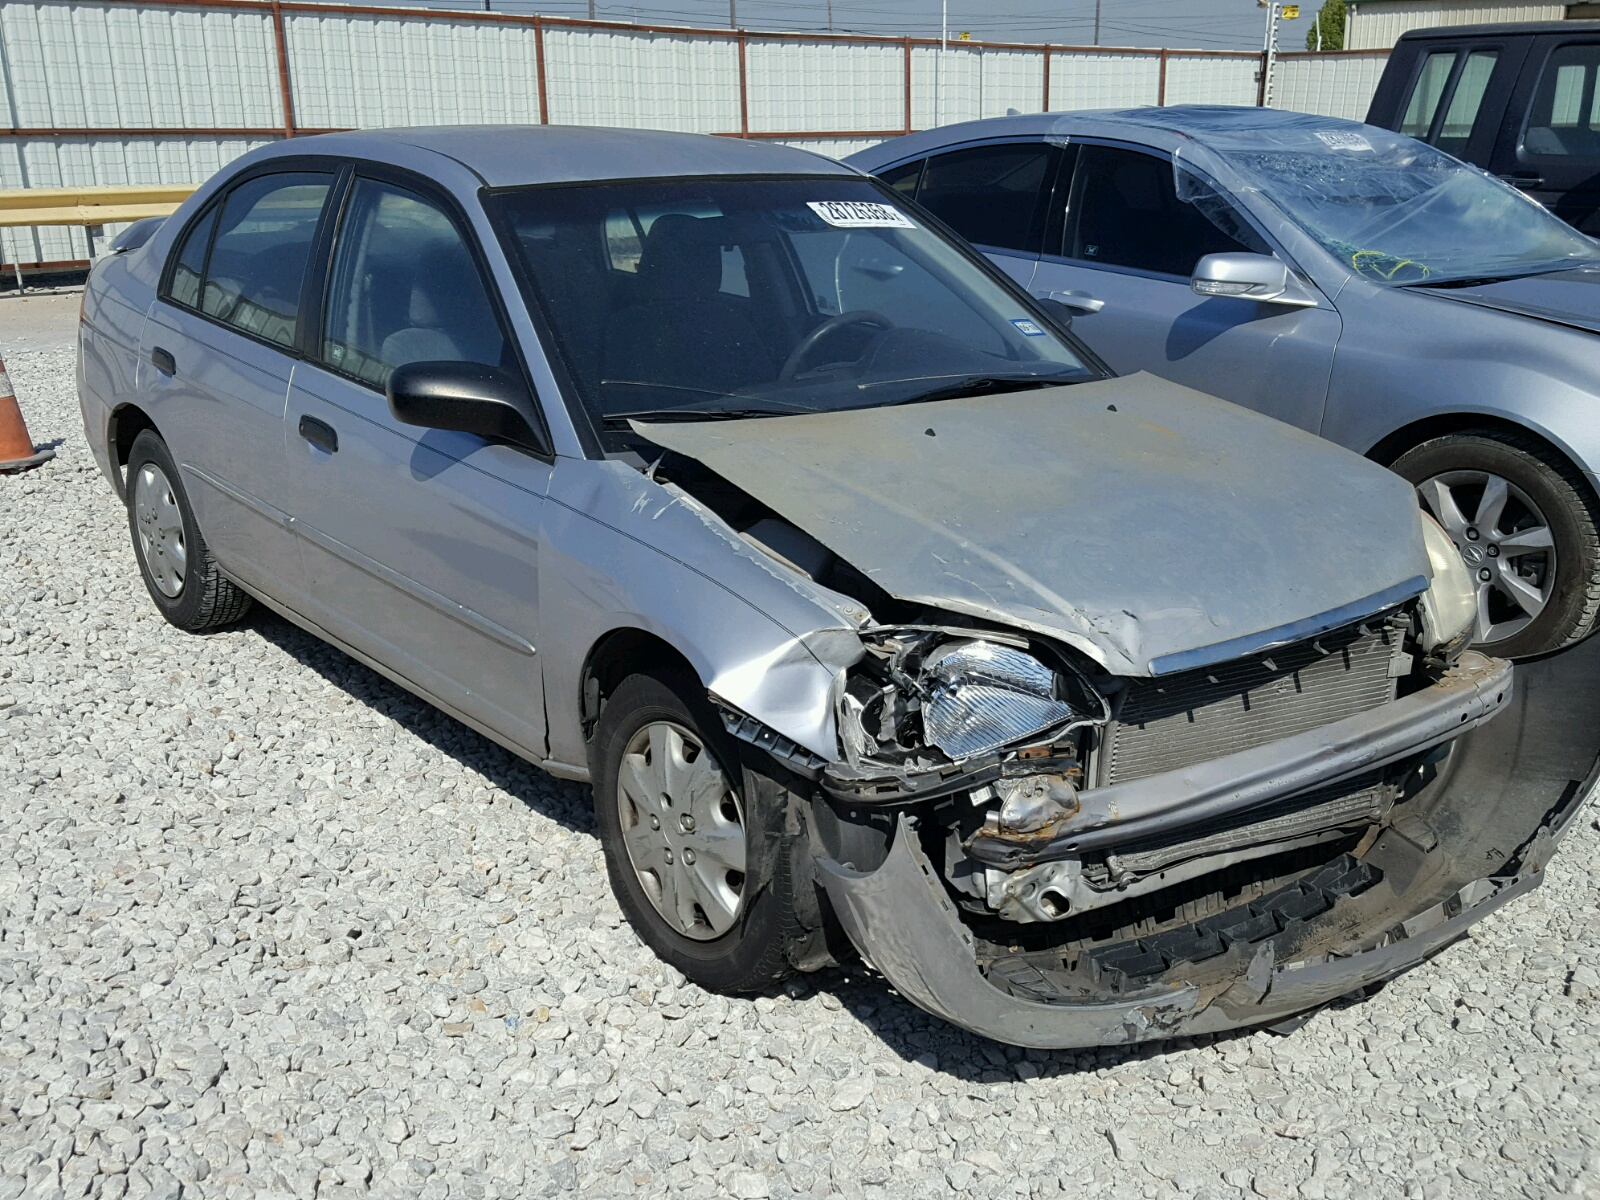 Auto Auction Ended On Vin 1hgem21991l032837 2001 Honda